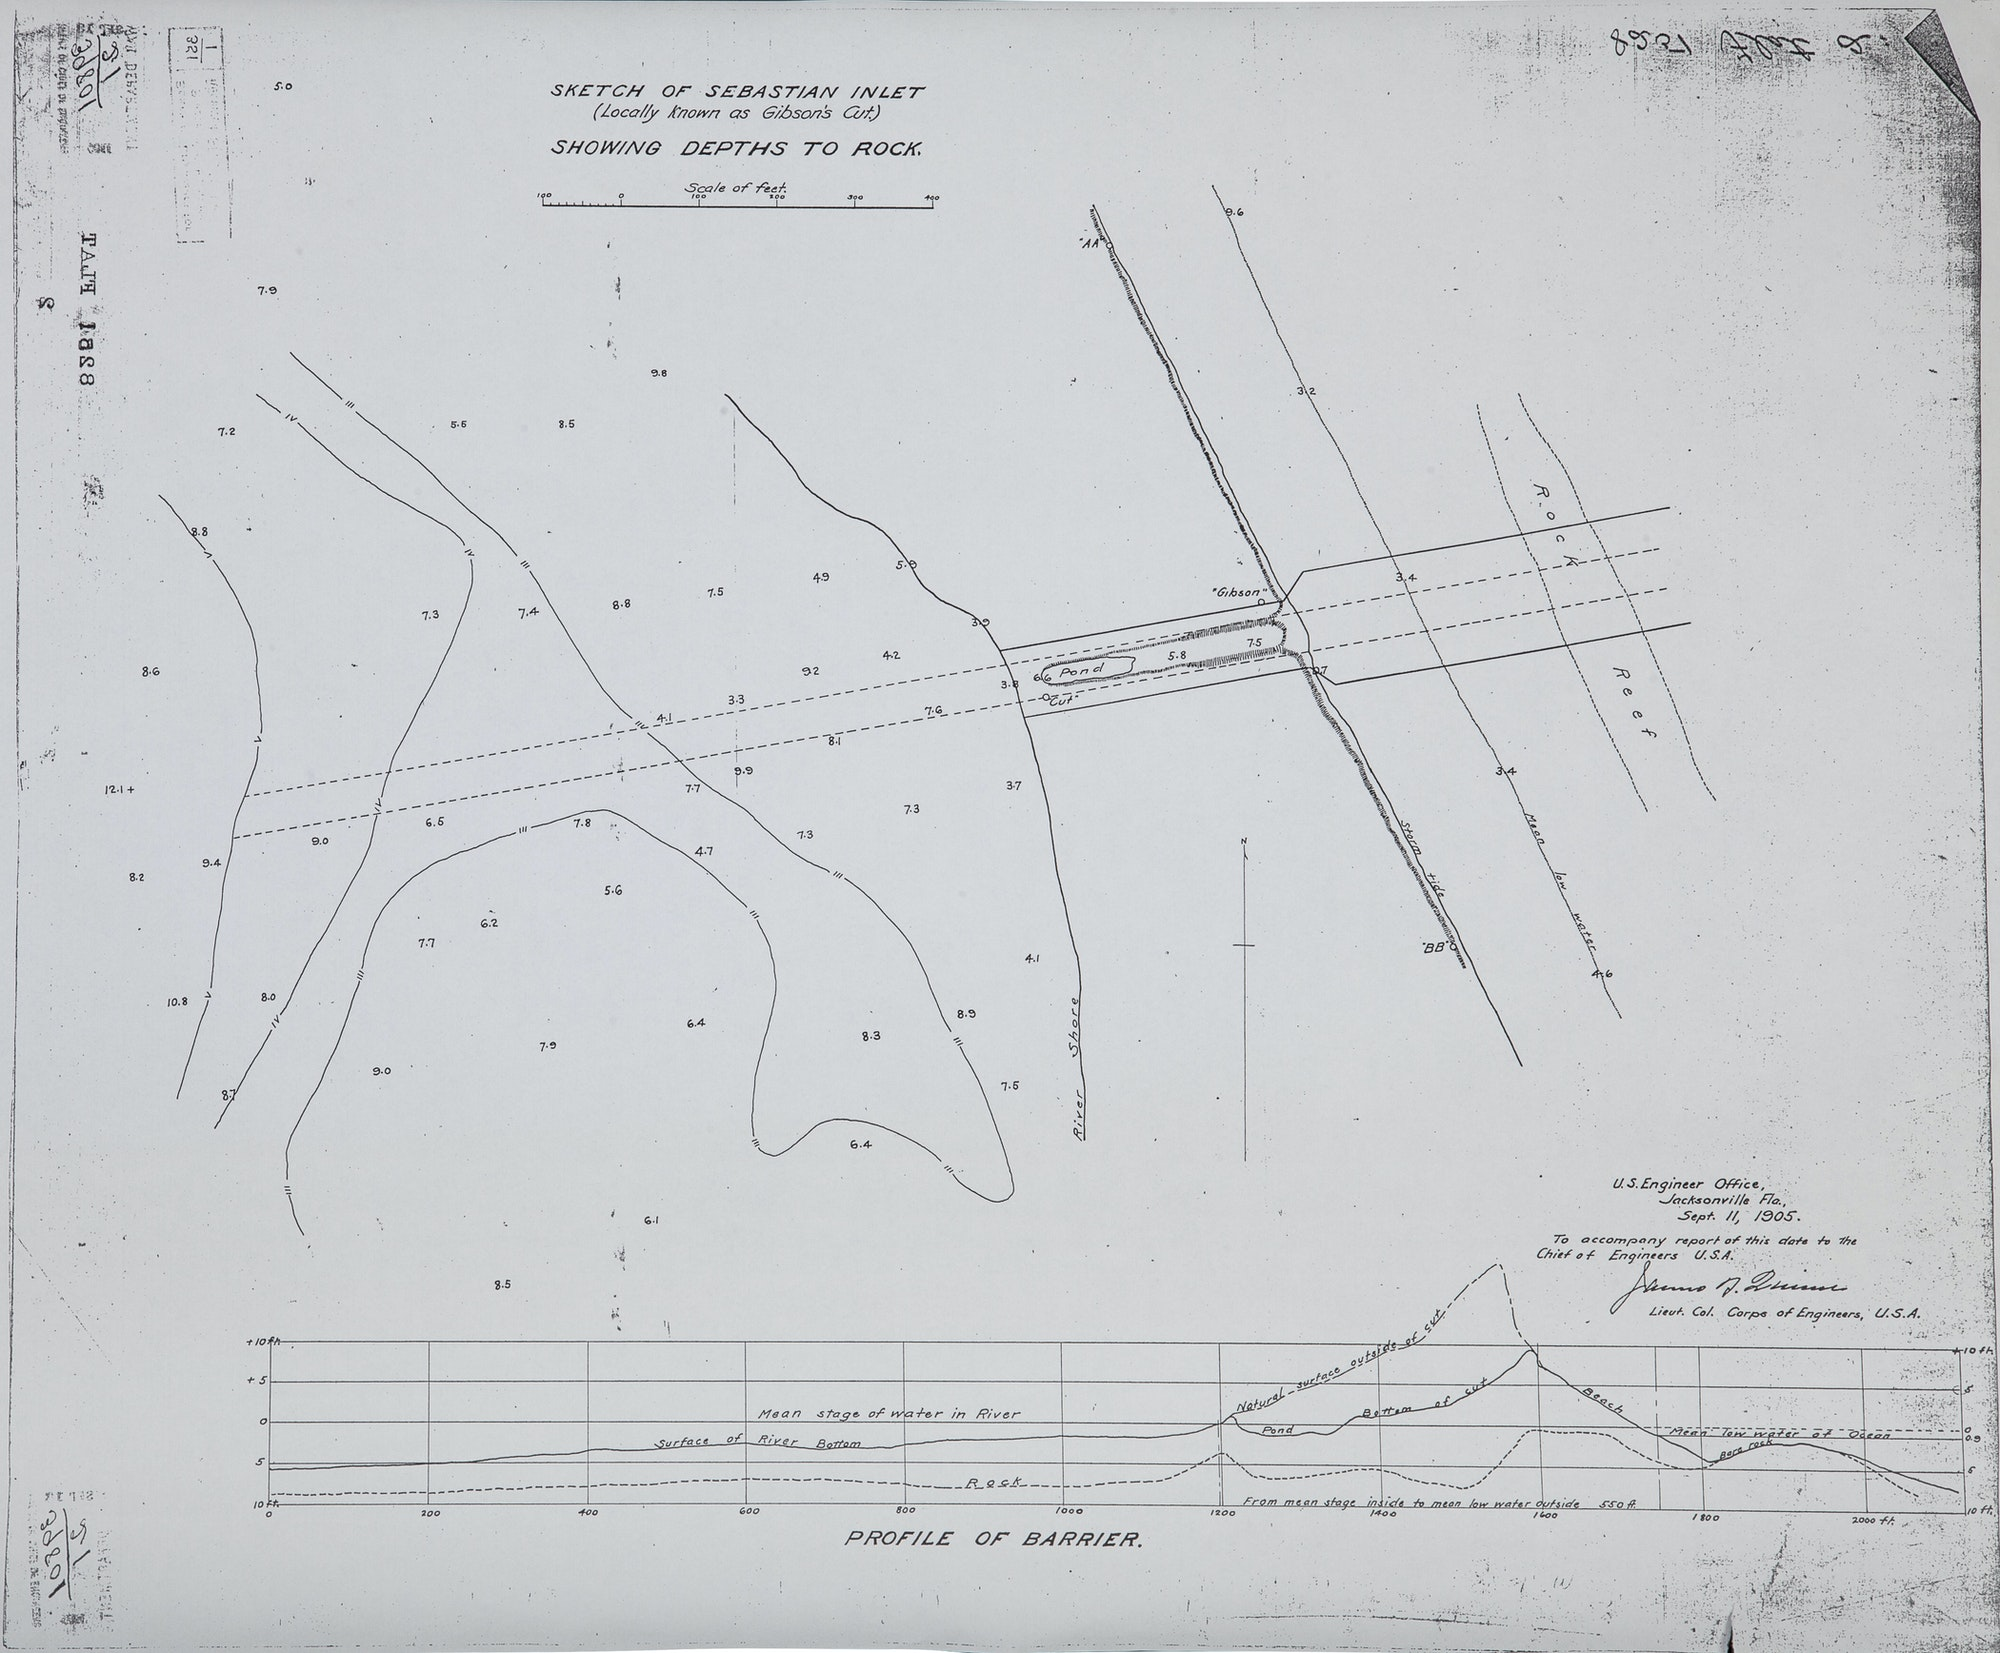 Hand-drawn bathymetric survey of inlet depths from 1905 US Army Corps of Engineers, Jacksonville division